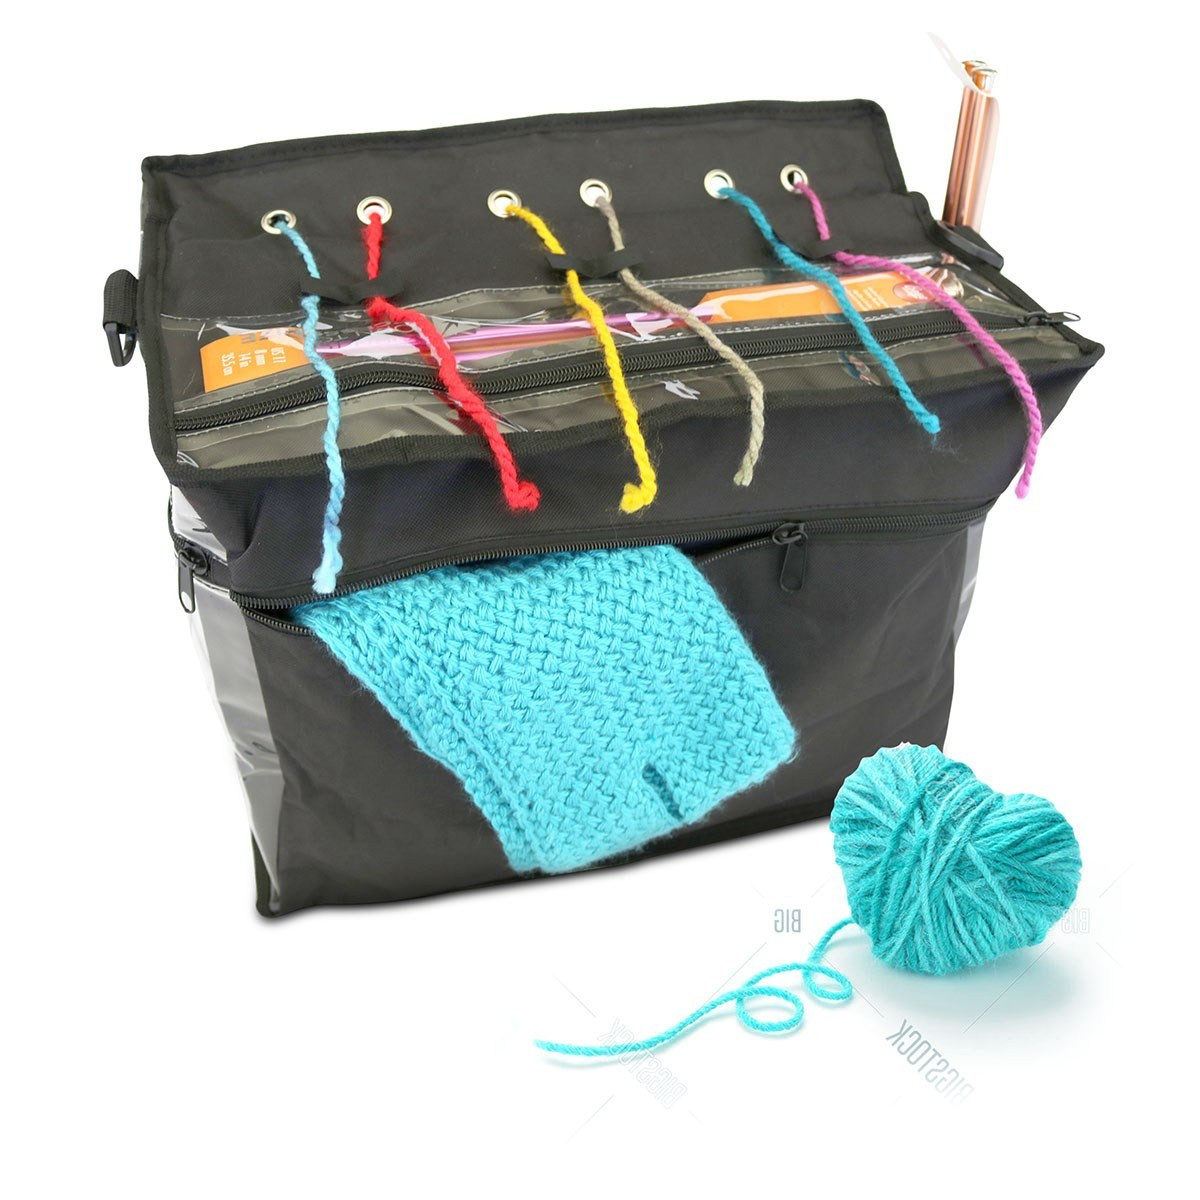 Premium Knitting Bag Tote and Organizer • TheBornTo